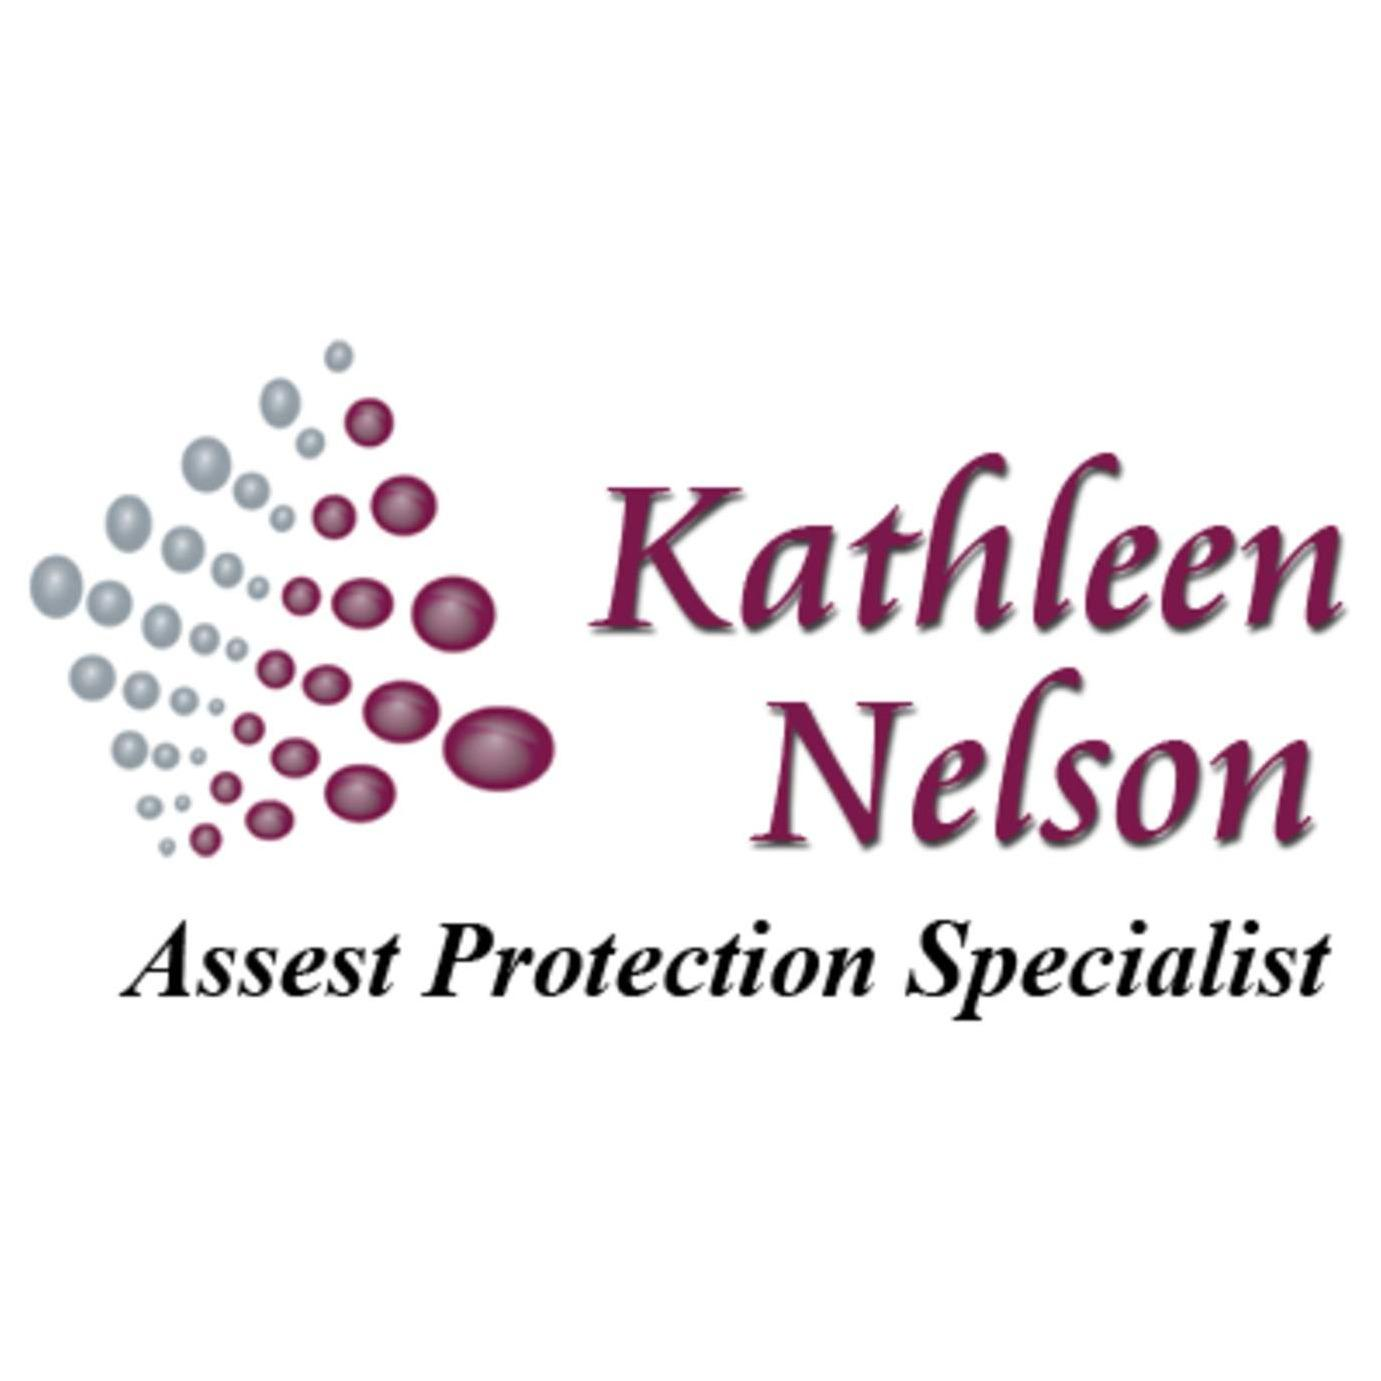 Kathleen Nelson - Assets Protection Specialist